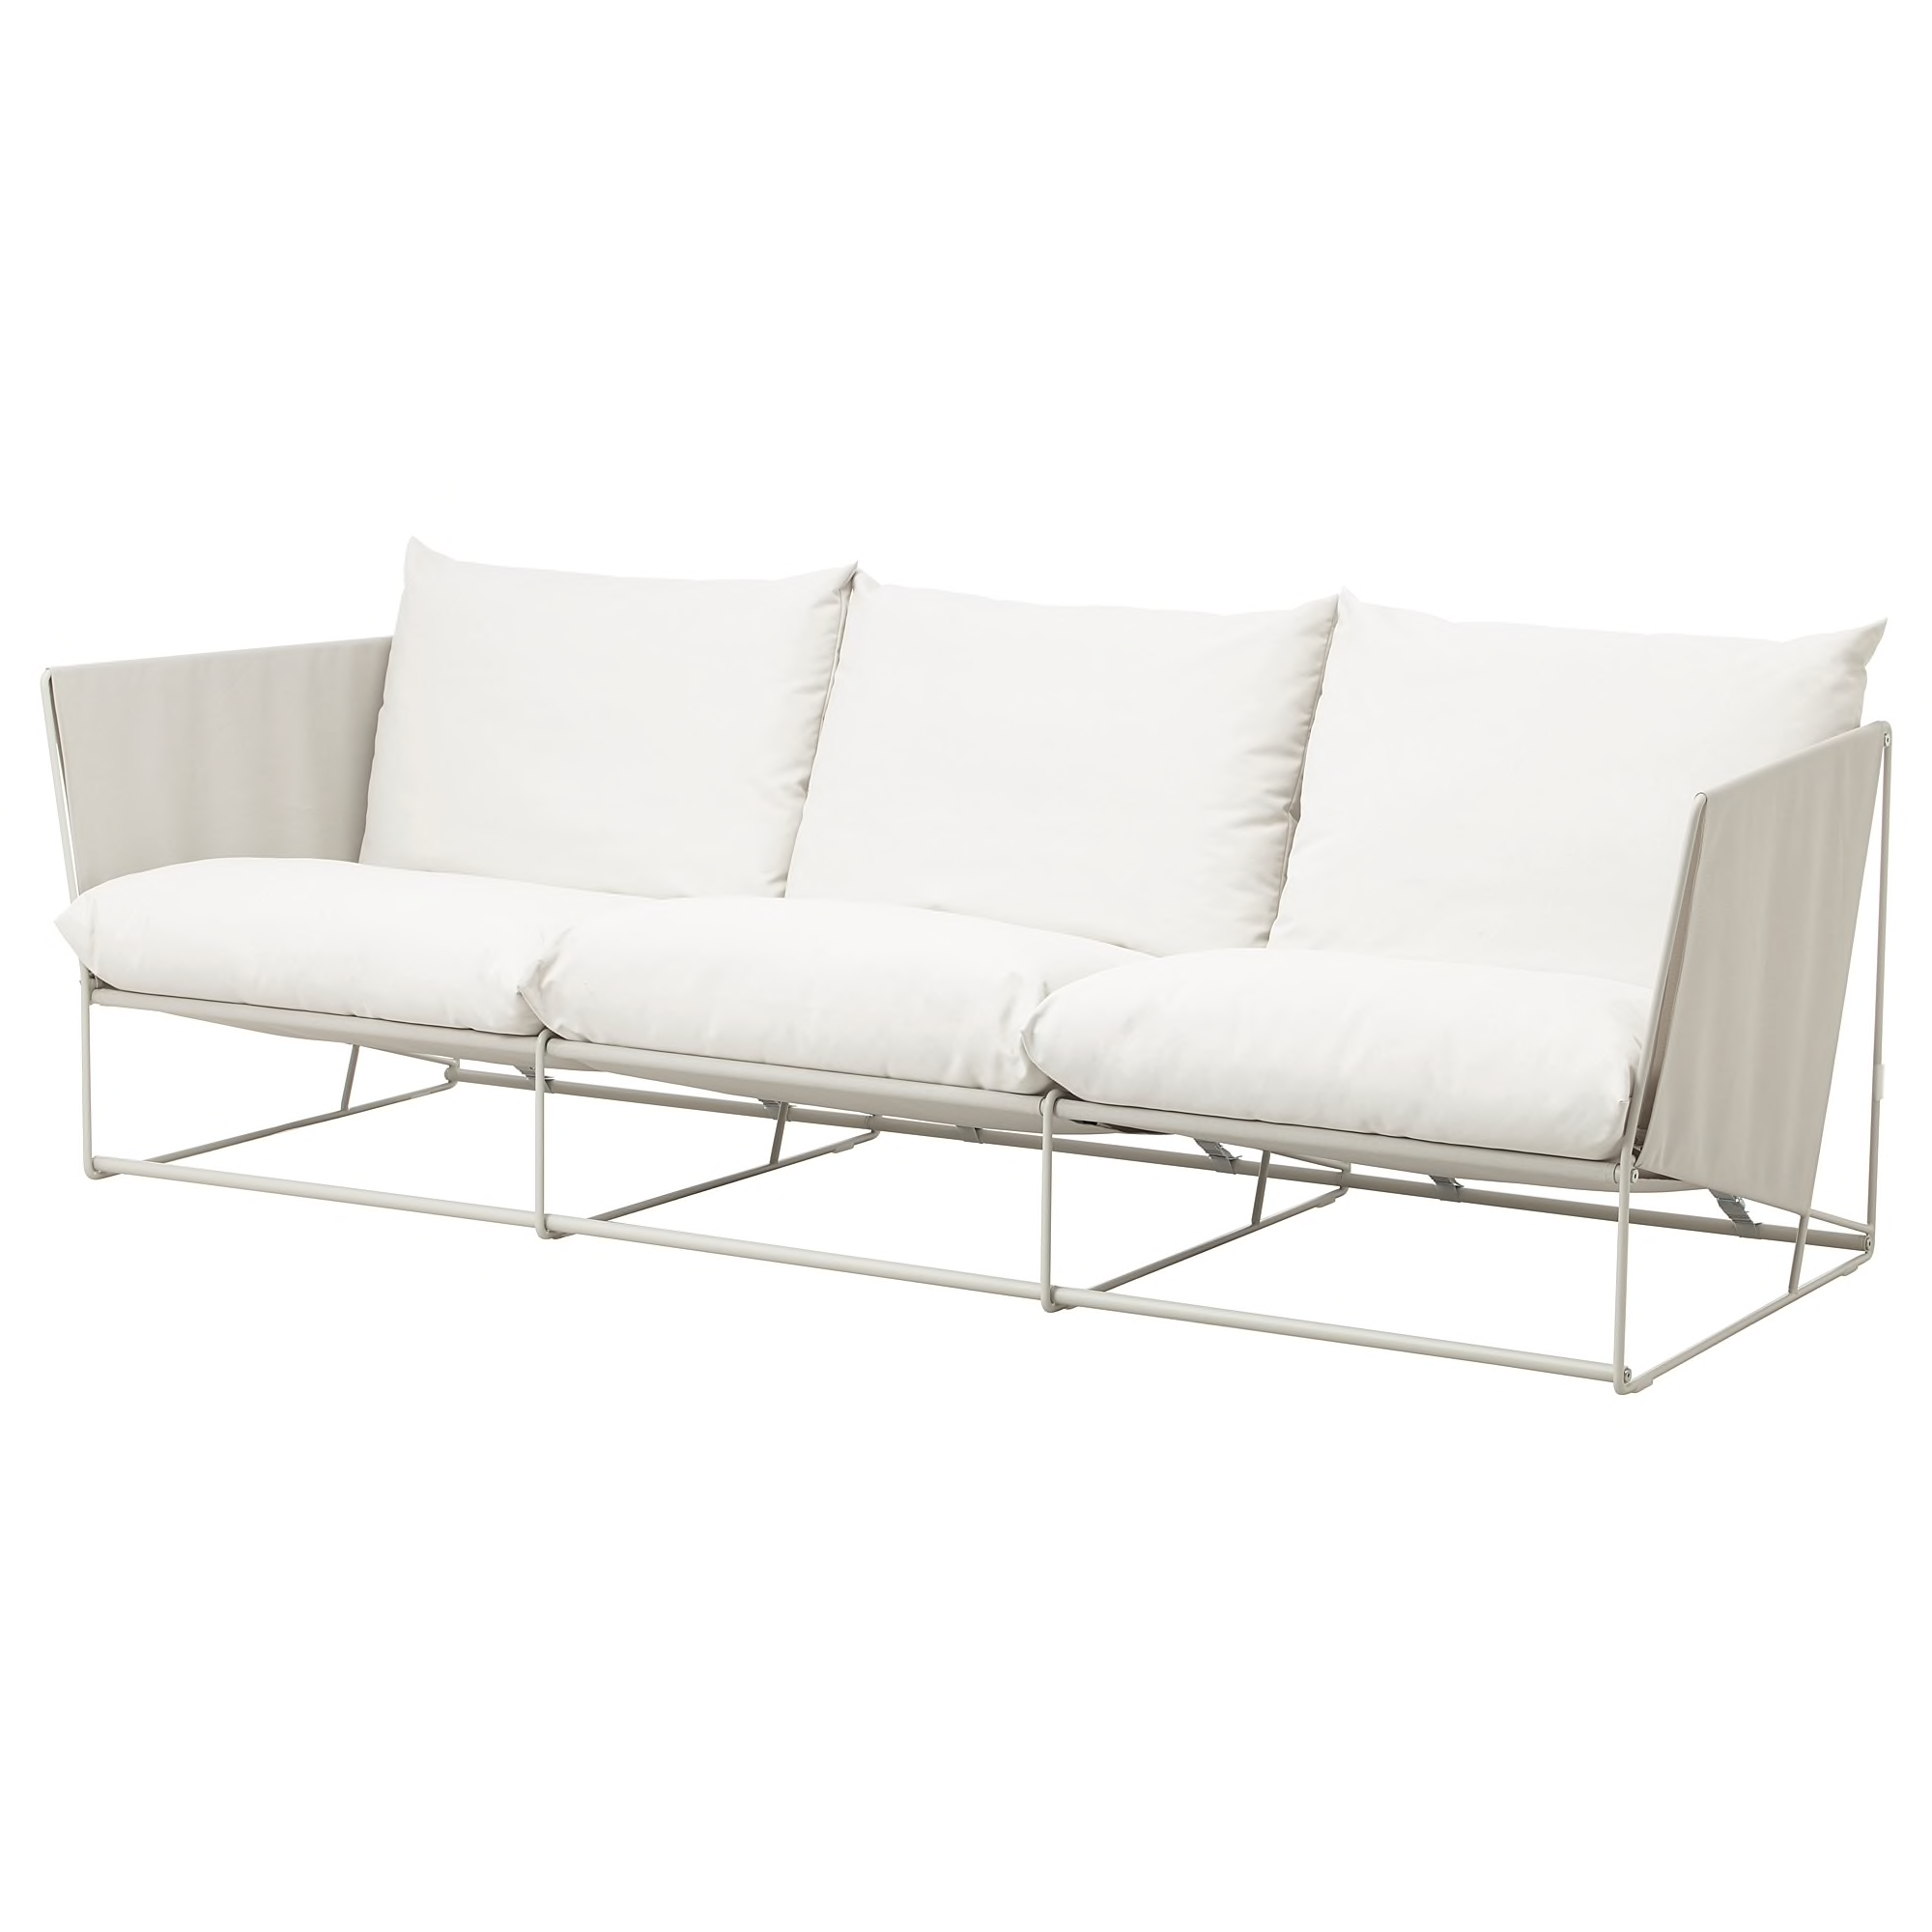 Pin By Kaz Ps On Beachwood Wish List Outdoor Lounge